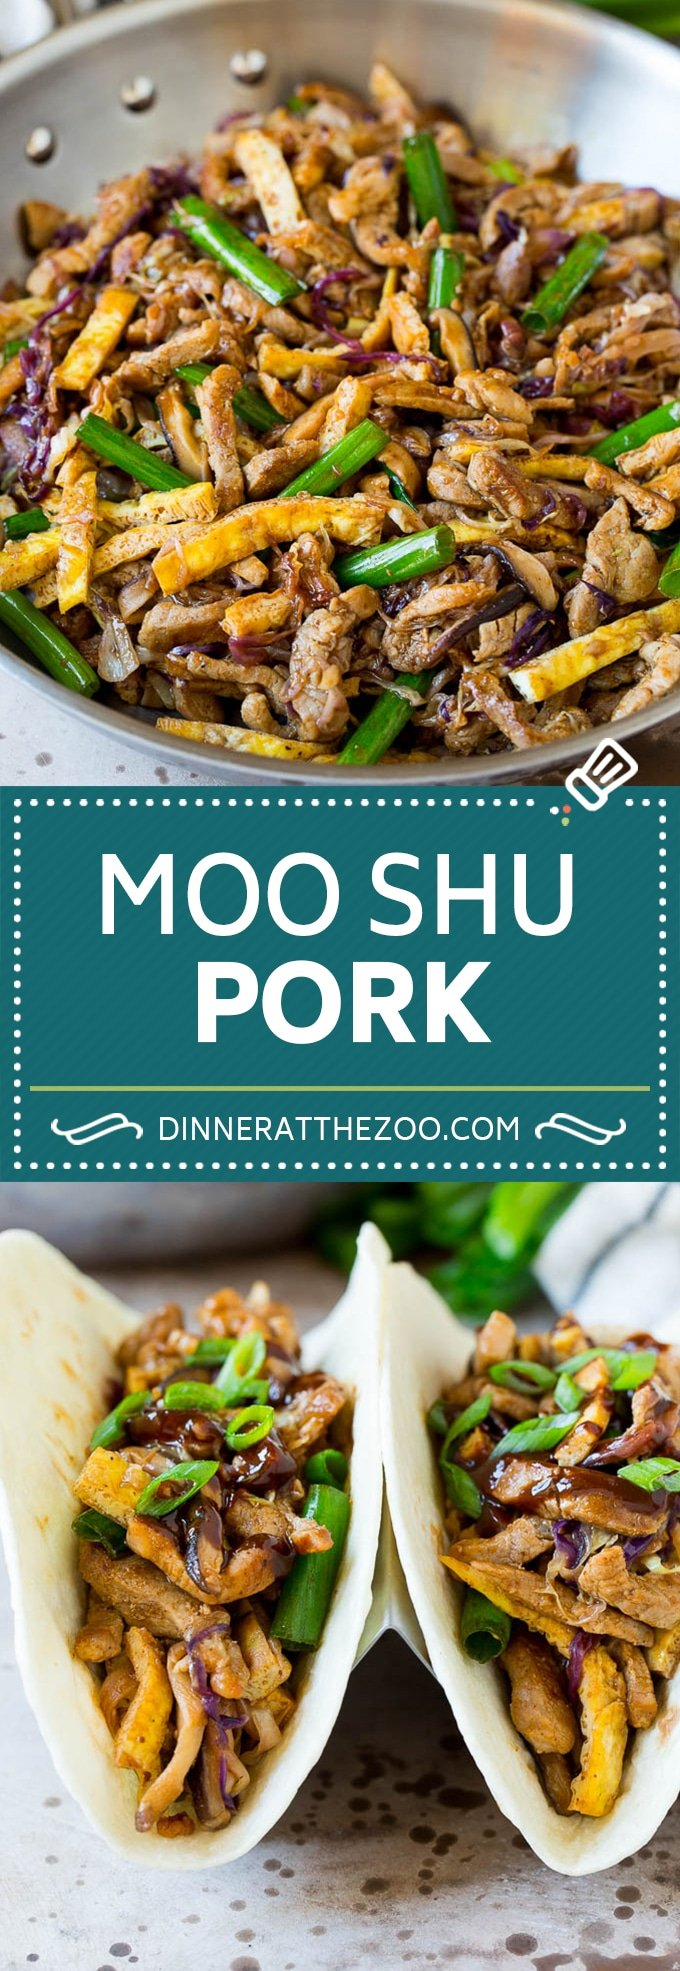 This moo shu pork is thinly sliced pork tenderloin stir fried with vegetables and egg, all in a savory sauce.